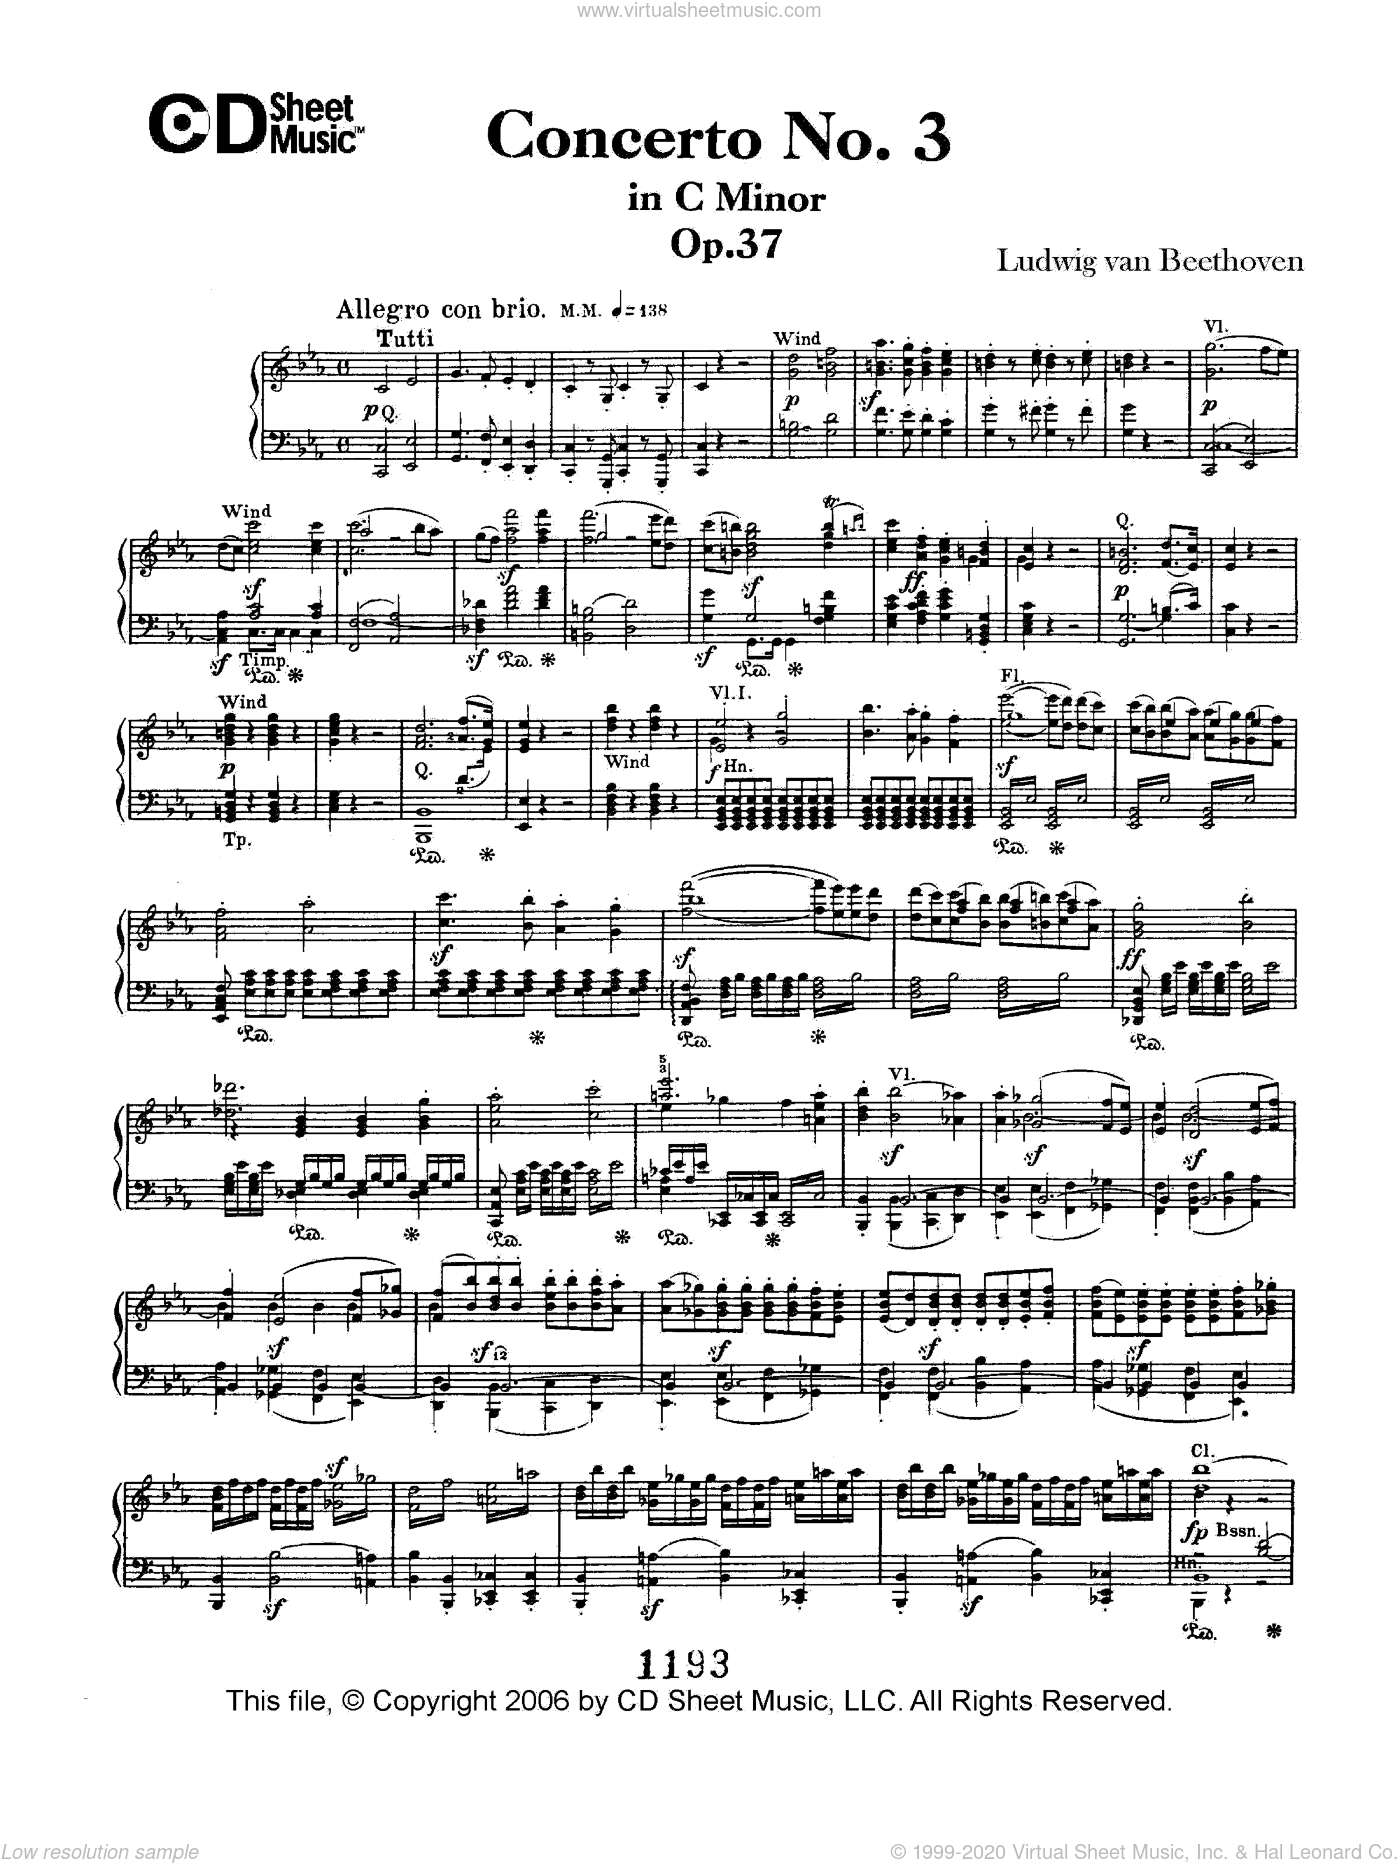 Concerto No. 3 in C Minor, Op. 37 sheet music for piano solo by Ludwig van Beethoven. Score Image Preview.